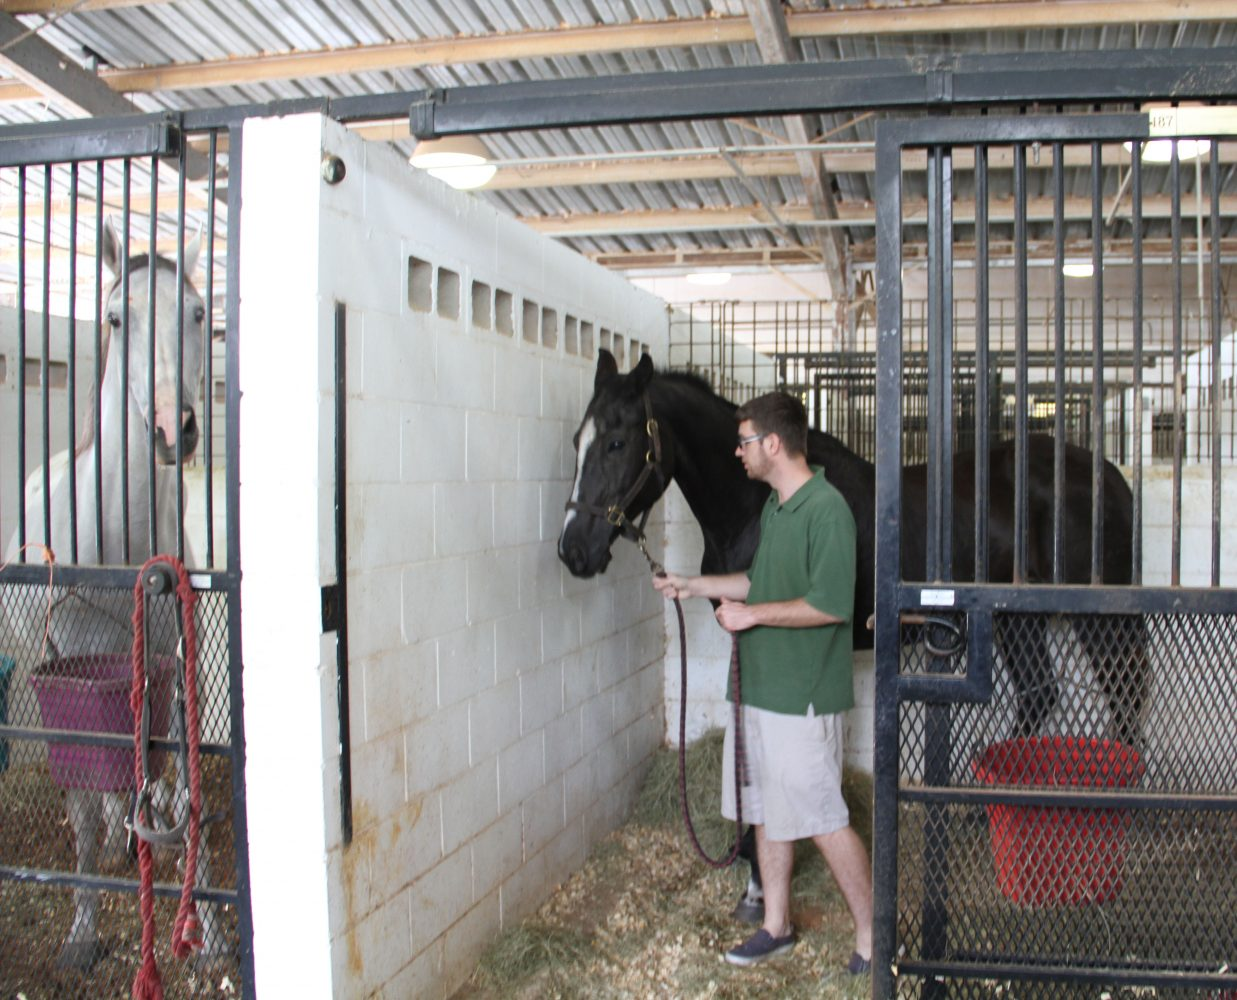 Steve Young, Broederdorf's partner, moves Treasure into her stall, next to Willy (left), Treasure's boyfriend. Willy was unstill and neighing before Treasure was moved in; Broederdorf said Willy was like that because he missed his girlfriend and he is not comfortable with the new environment. (Cassandra Alamilla/WUFT News)